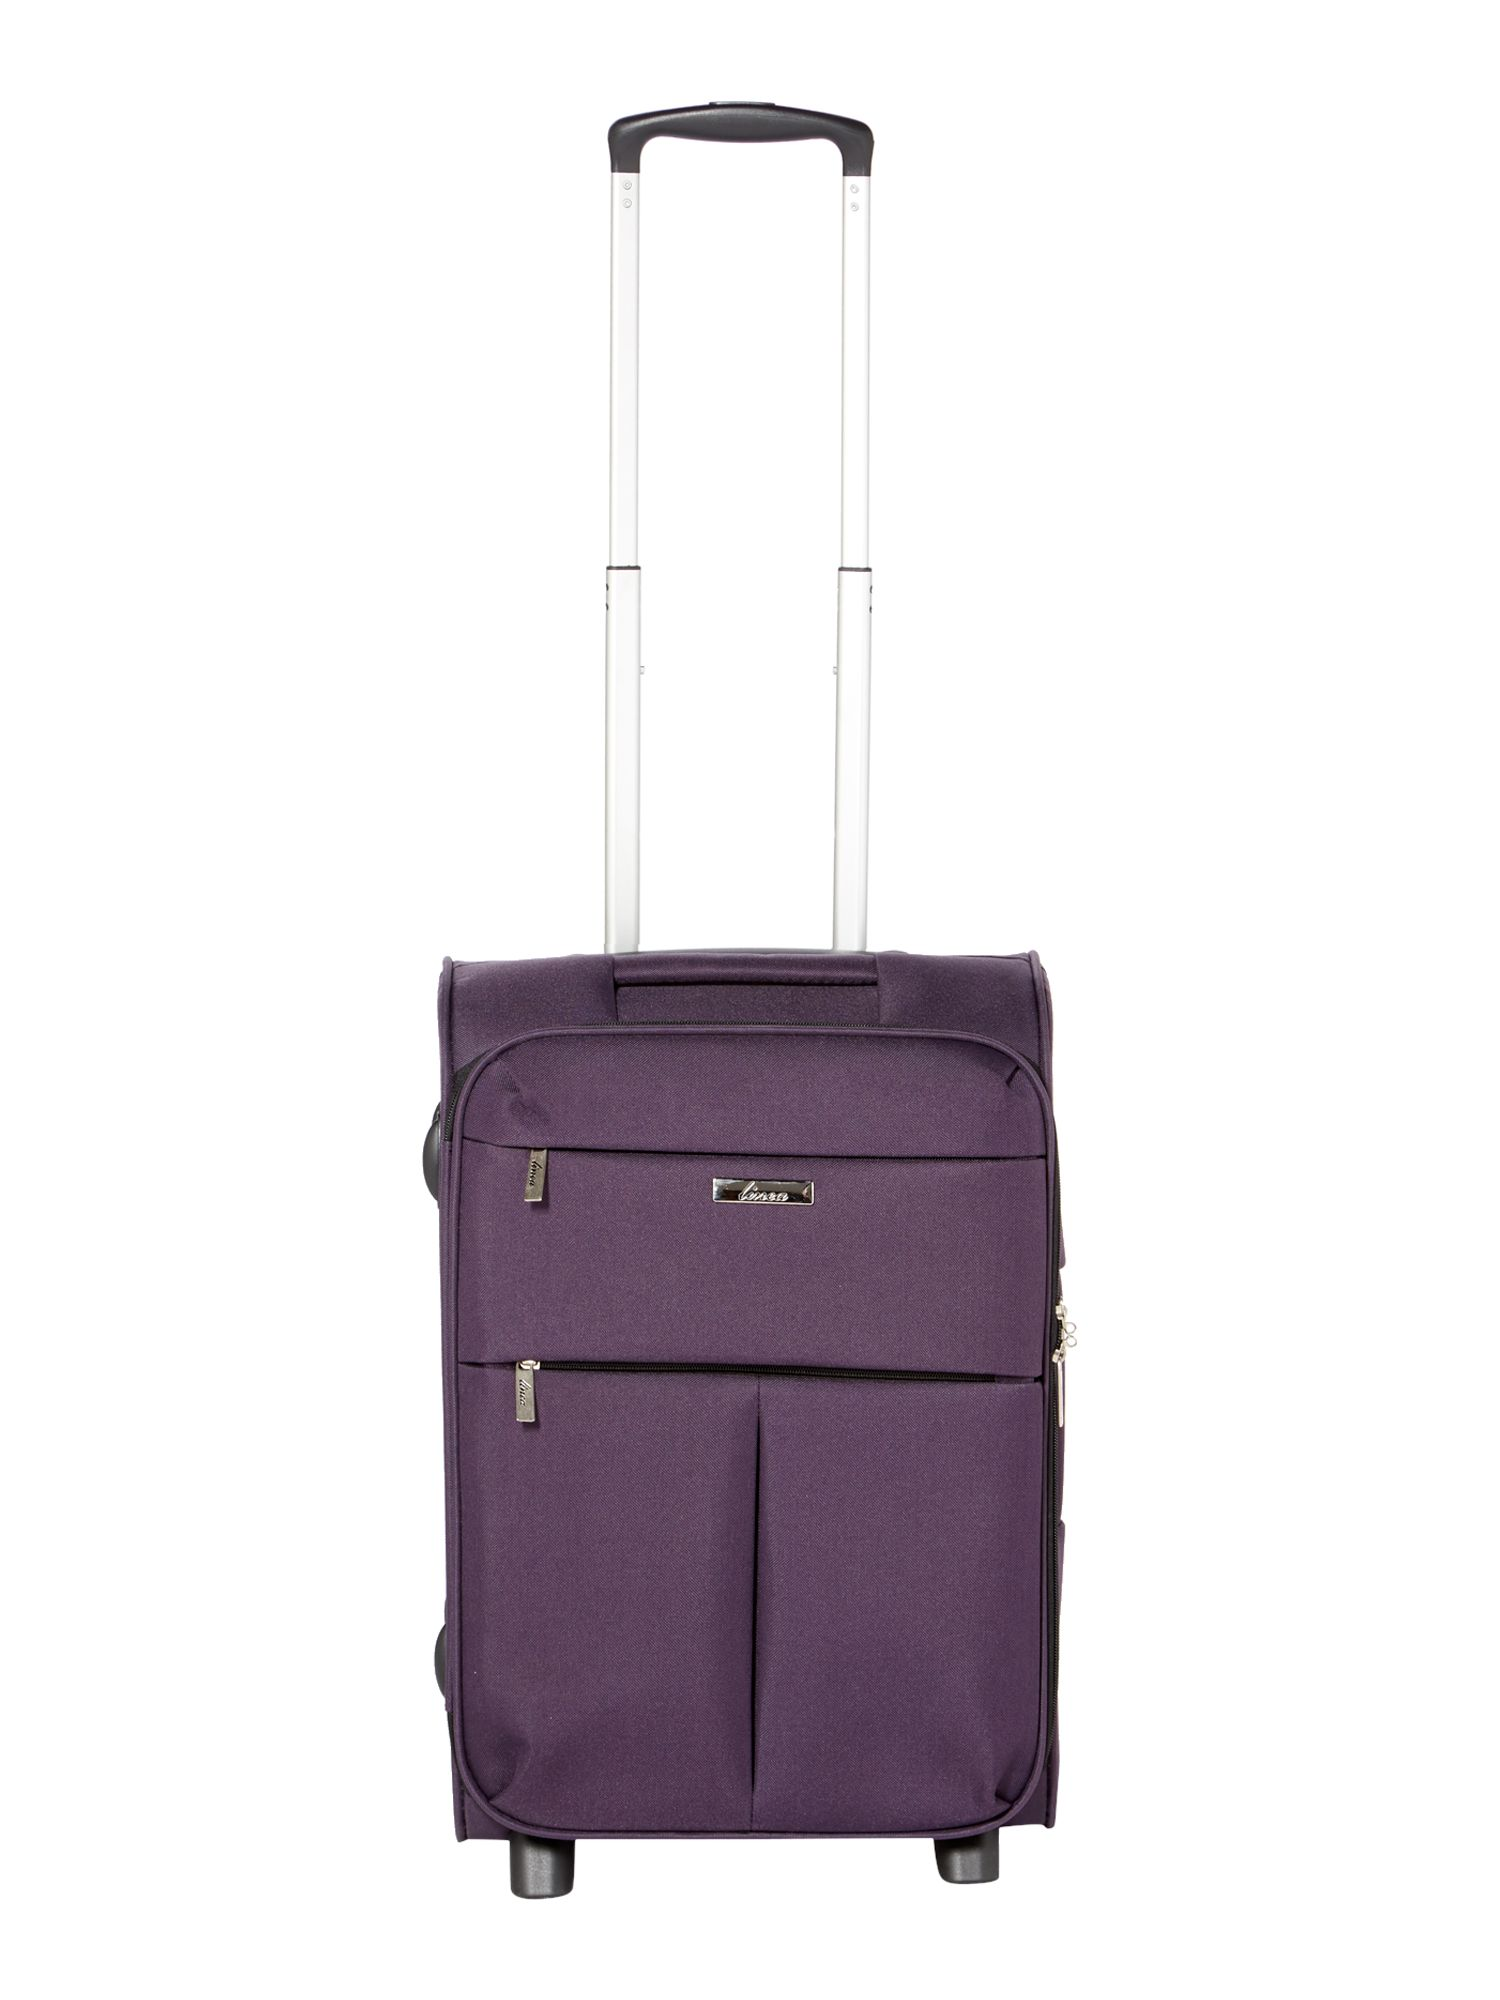 Linea Cambridge purple 2 wheel soft cabin suitcase Purple